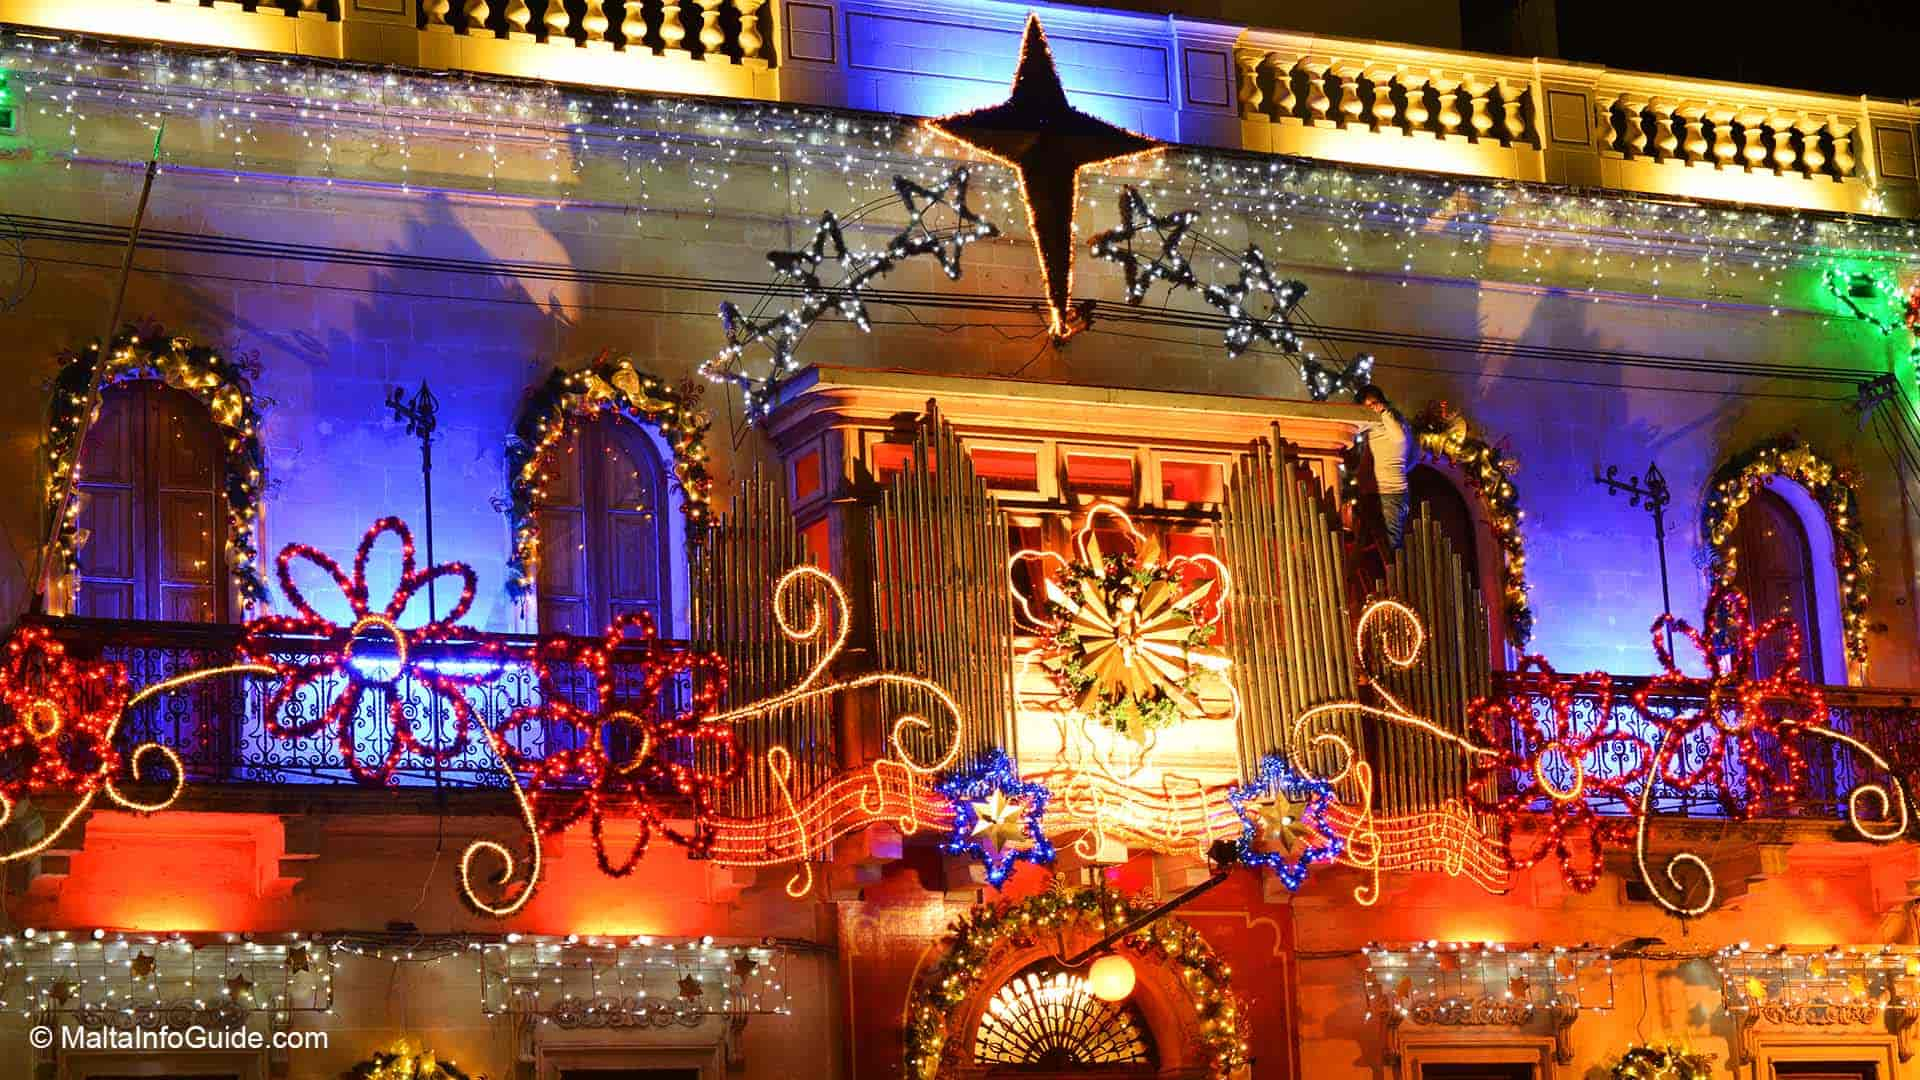 De Paul band club at Paola decorated for Christmas